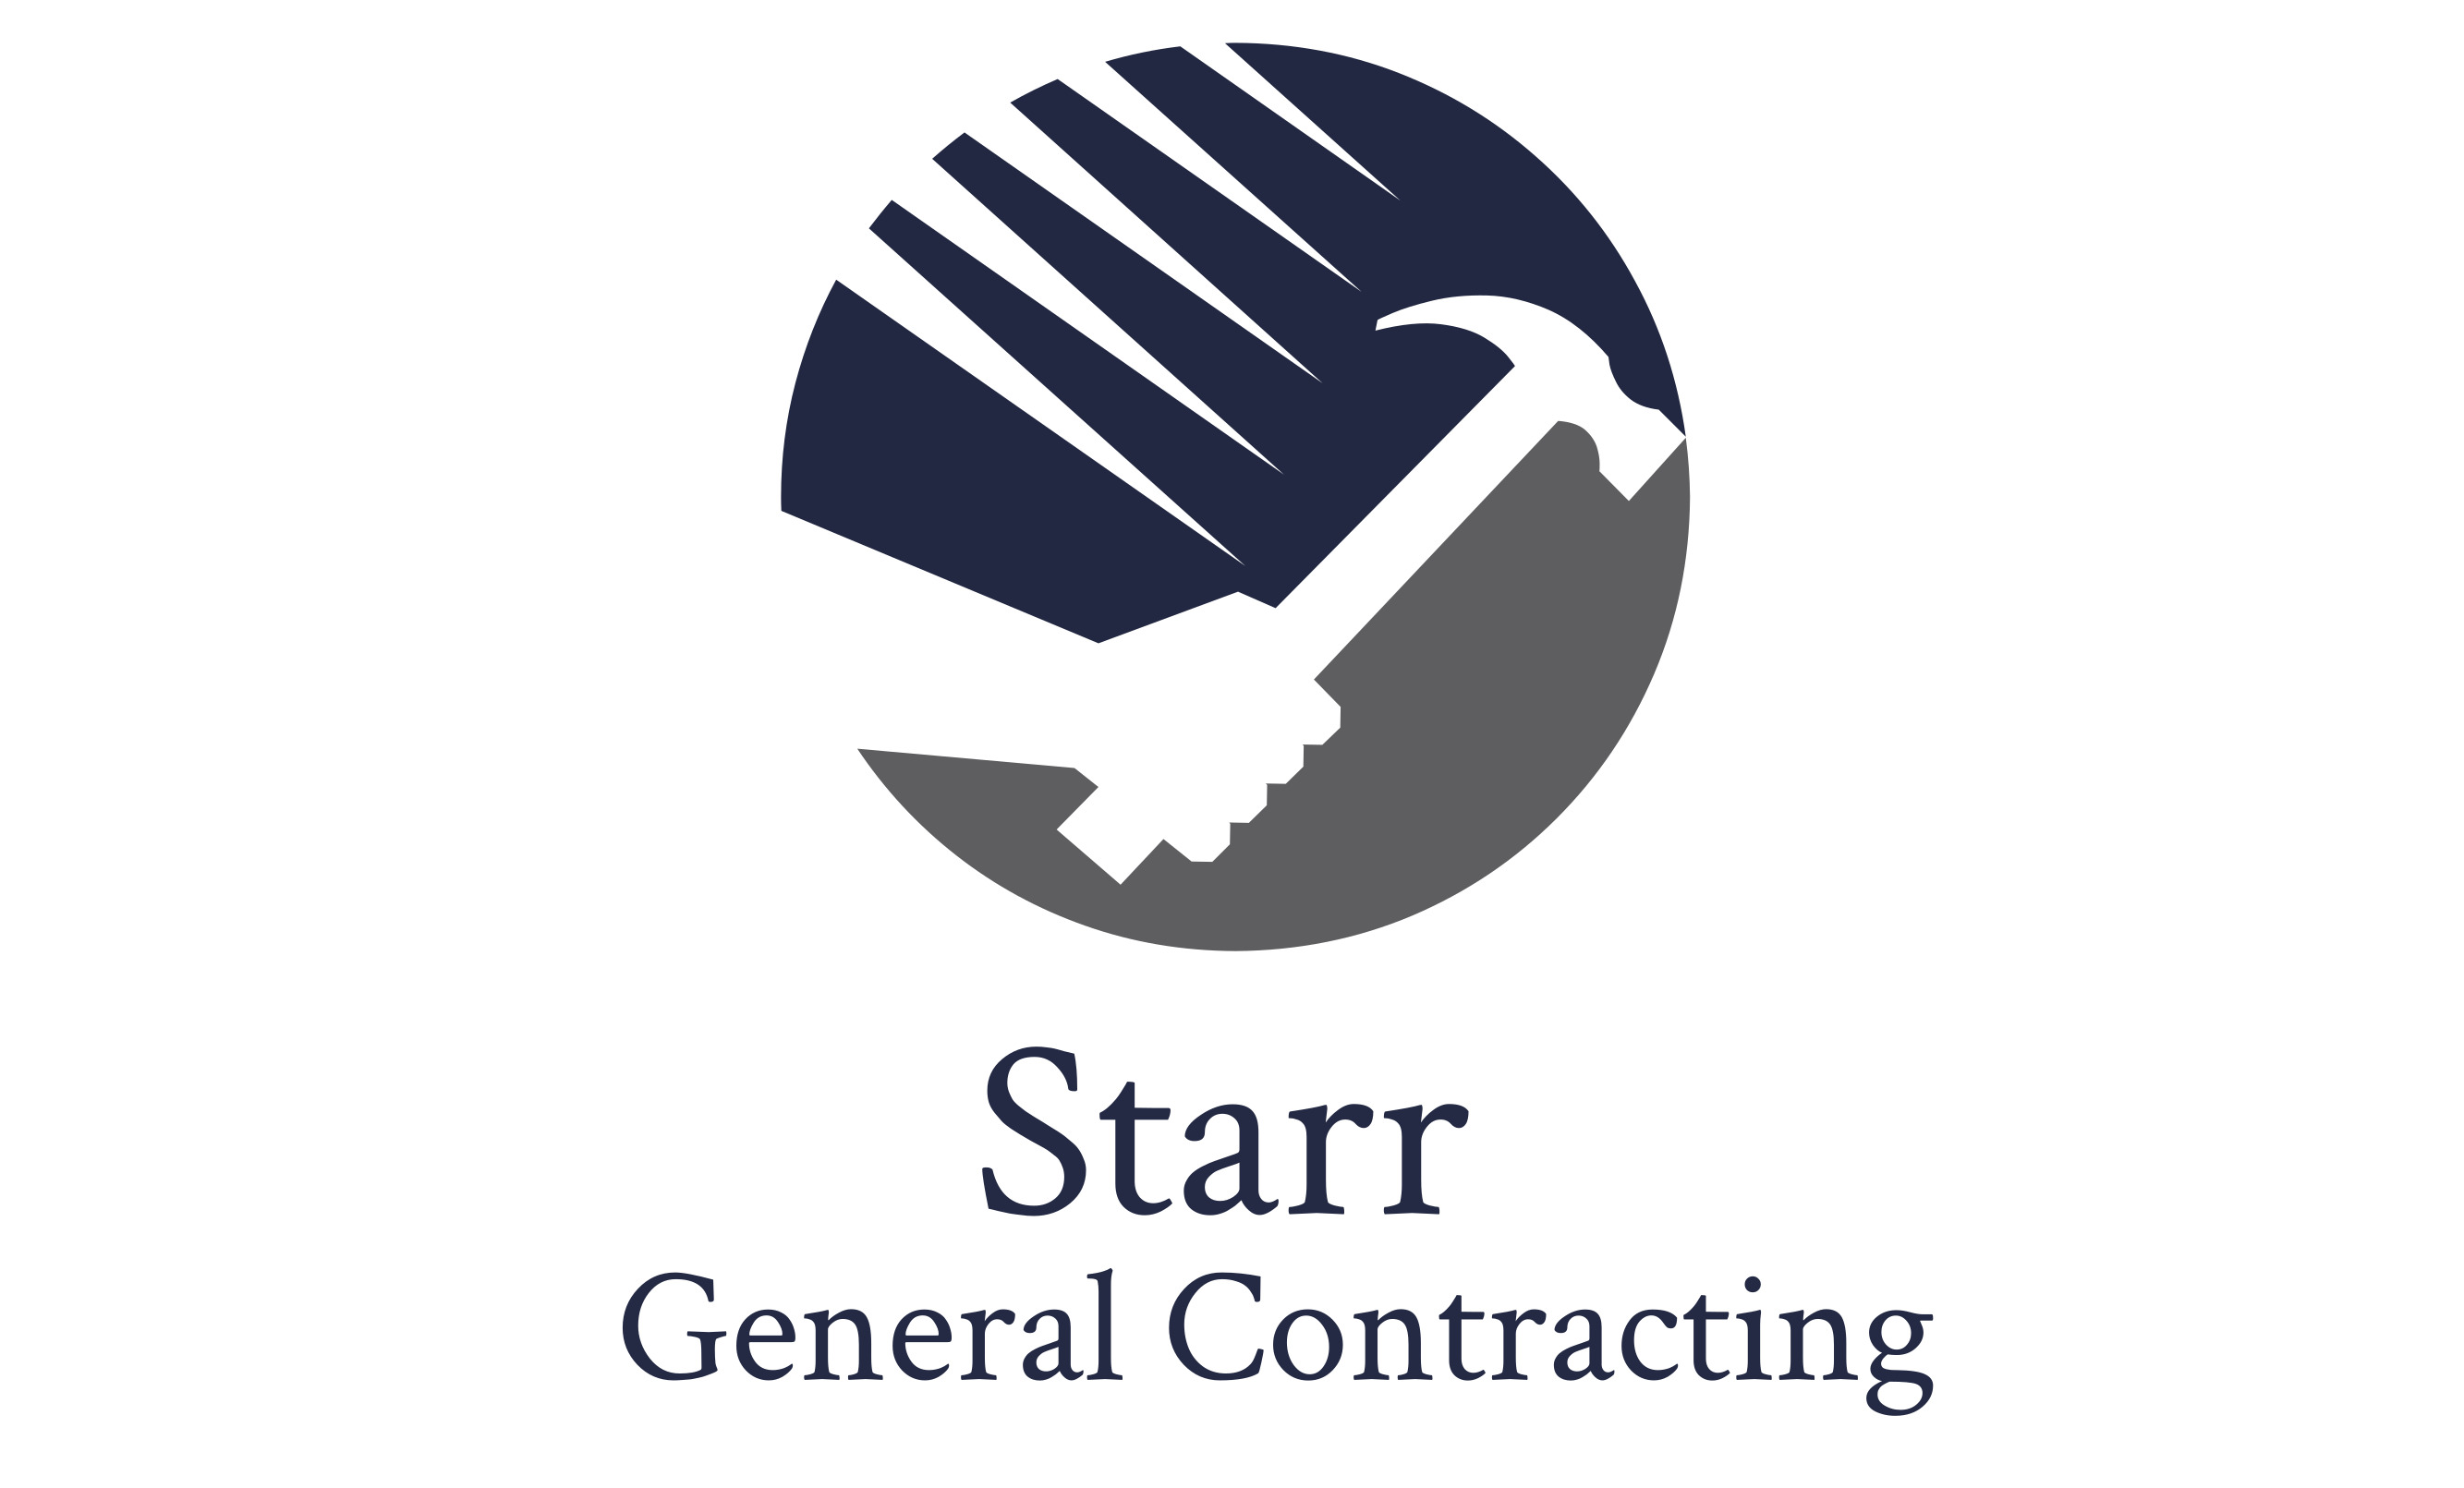 Starr General Contracting logo